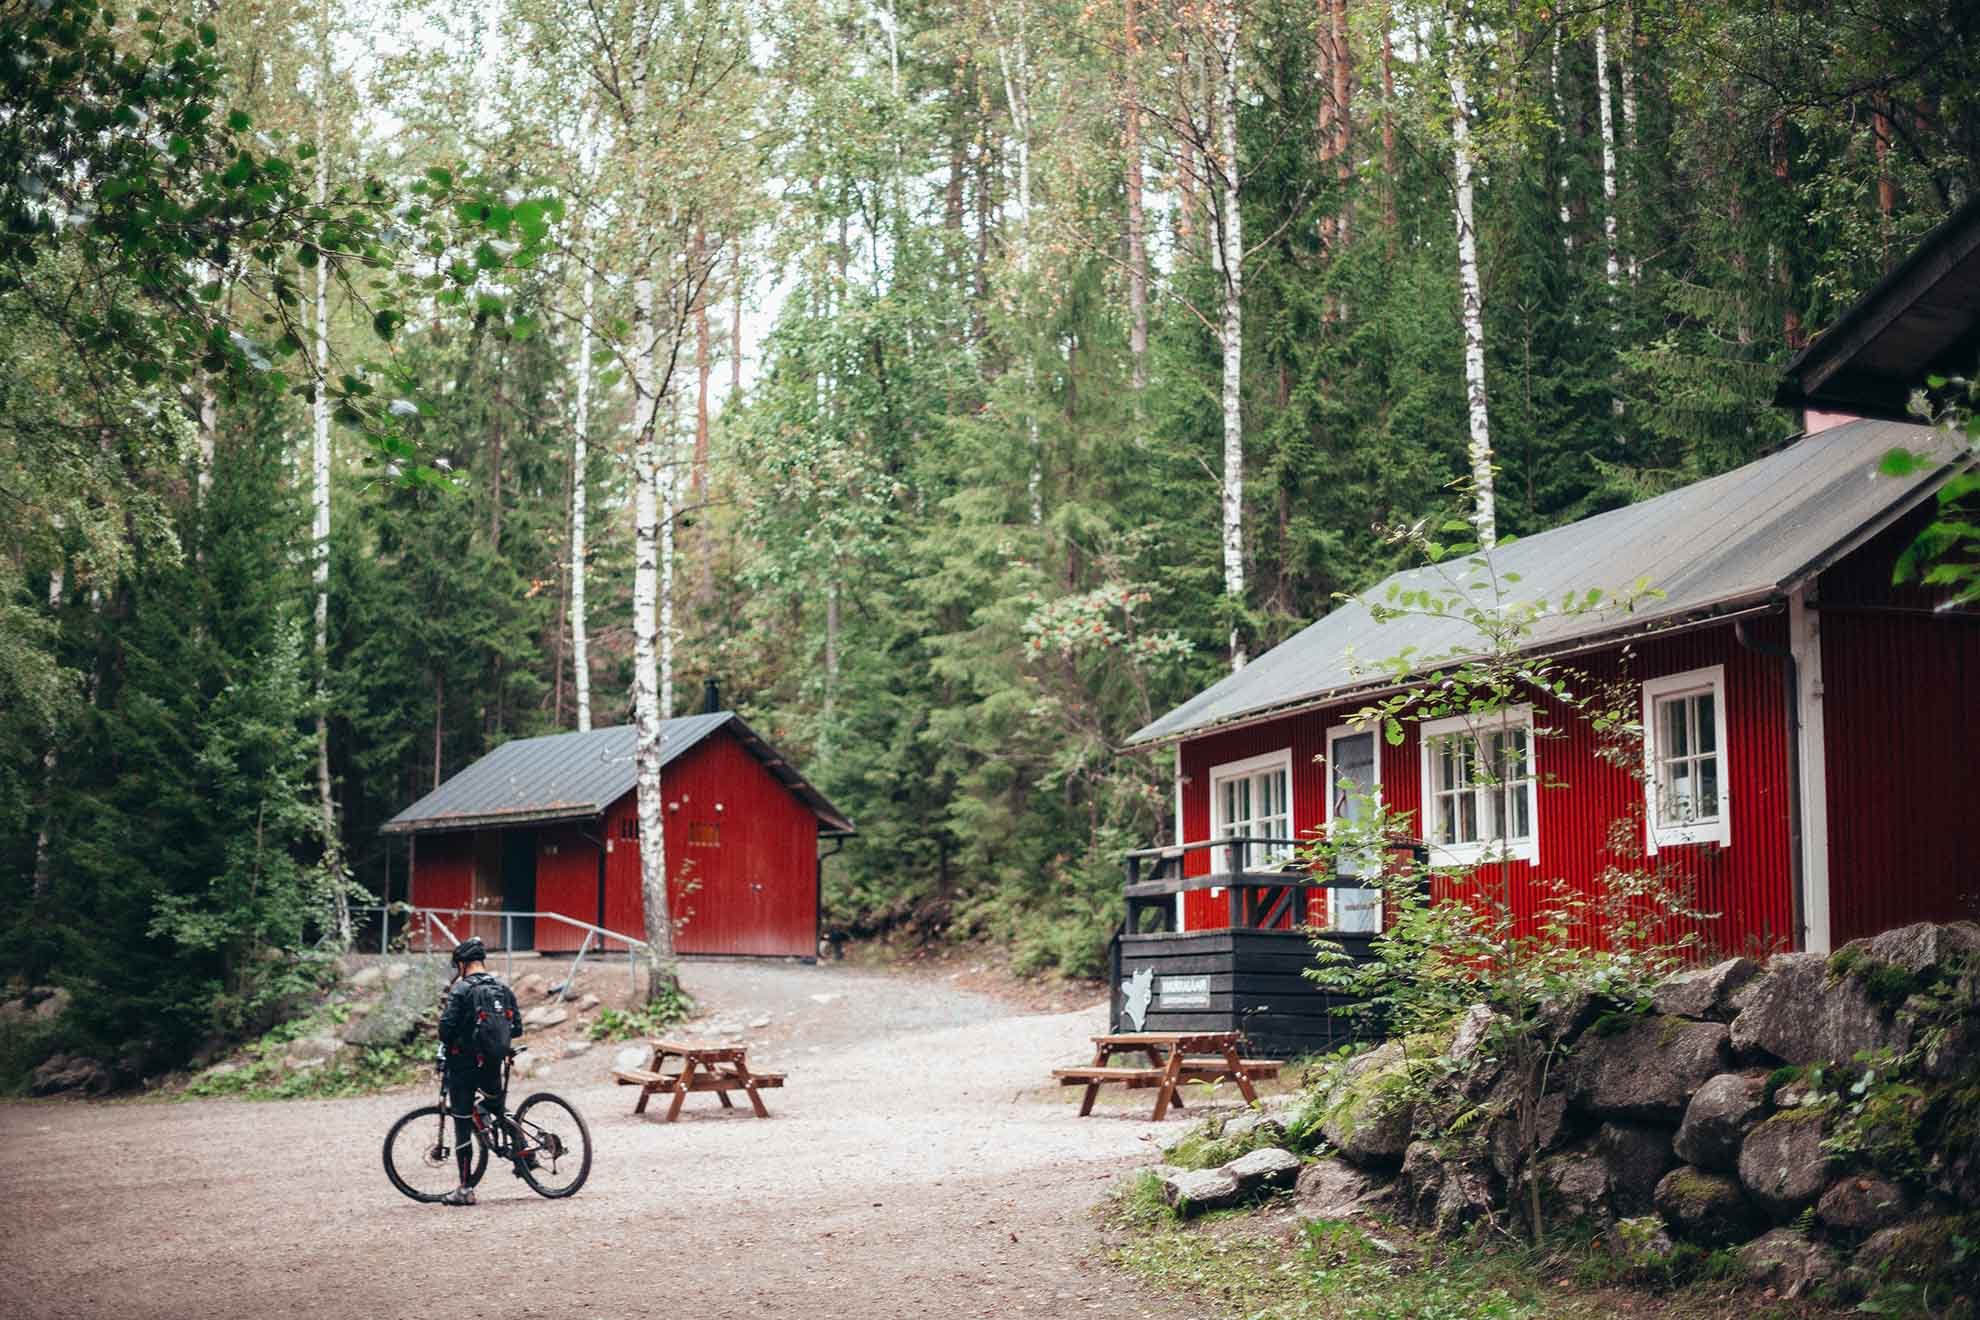 A red summer cottage with a cyclist in the yard